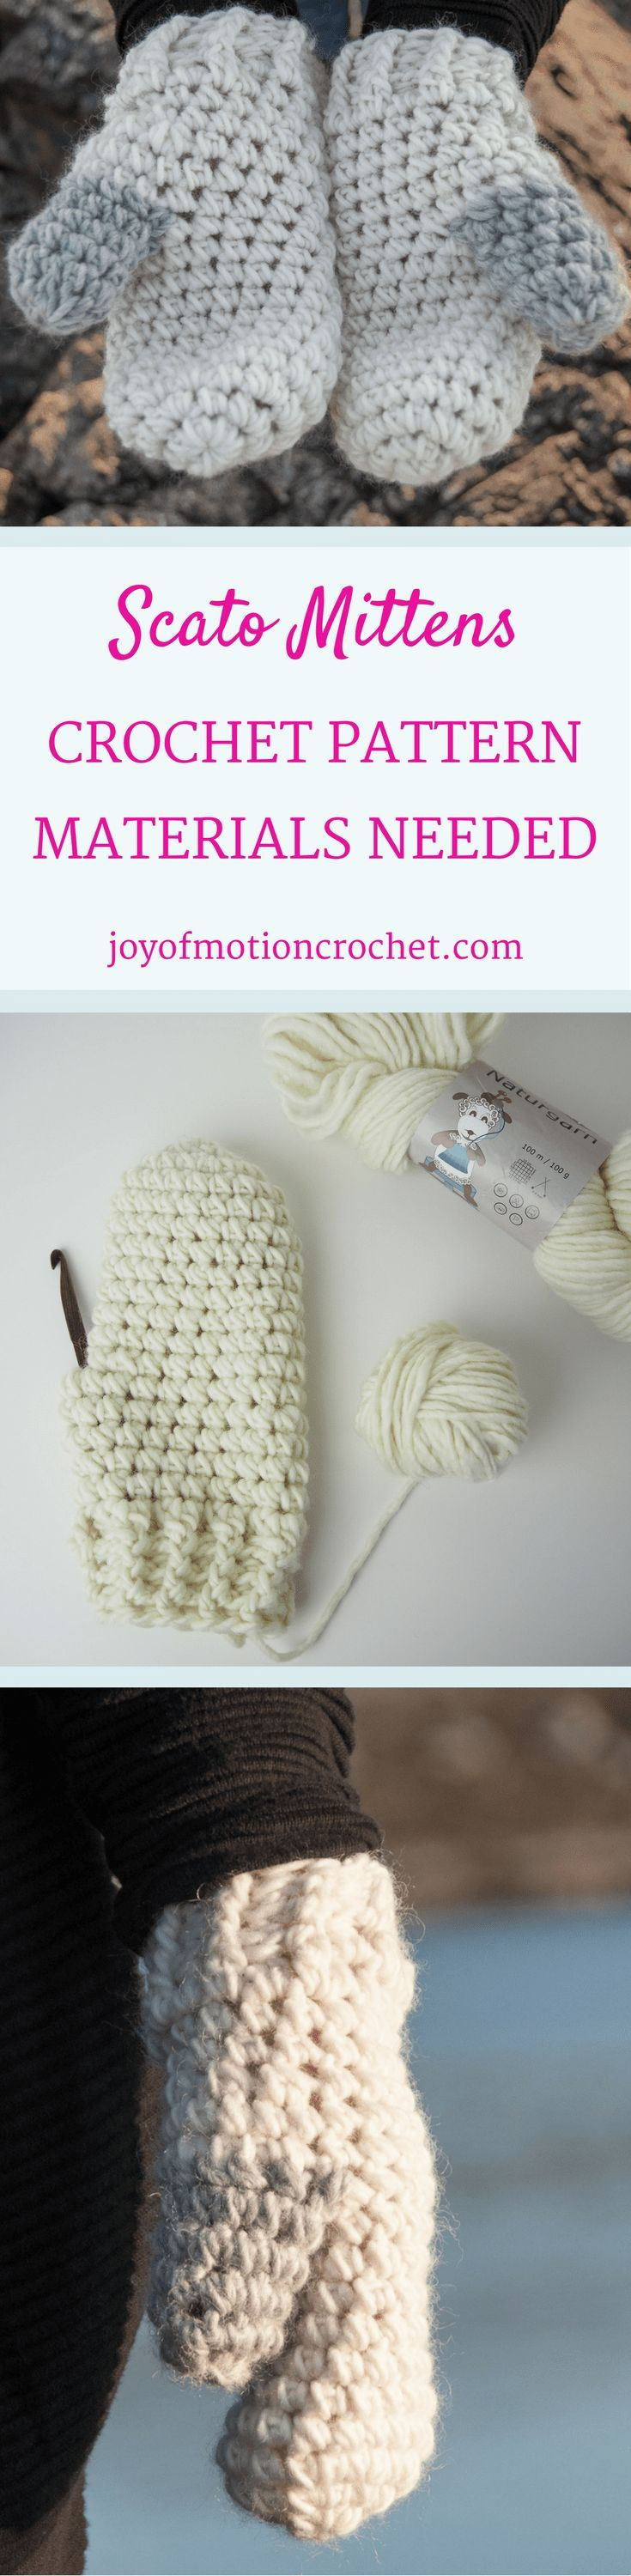 1866 best crochet gloves mittens images on pinterest crochet 1866 best crochet gloves mittens images on pinterest crochet patterns crochet free patterns and crochet stitches patterns bankloansurffo Choice Image